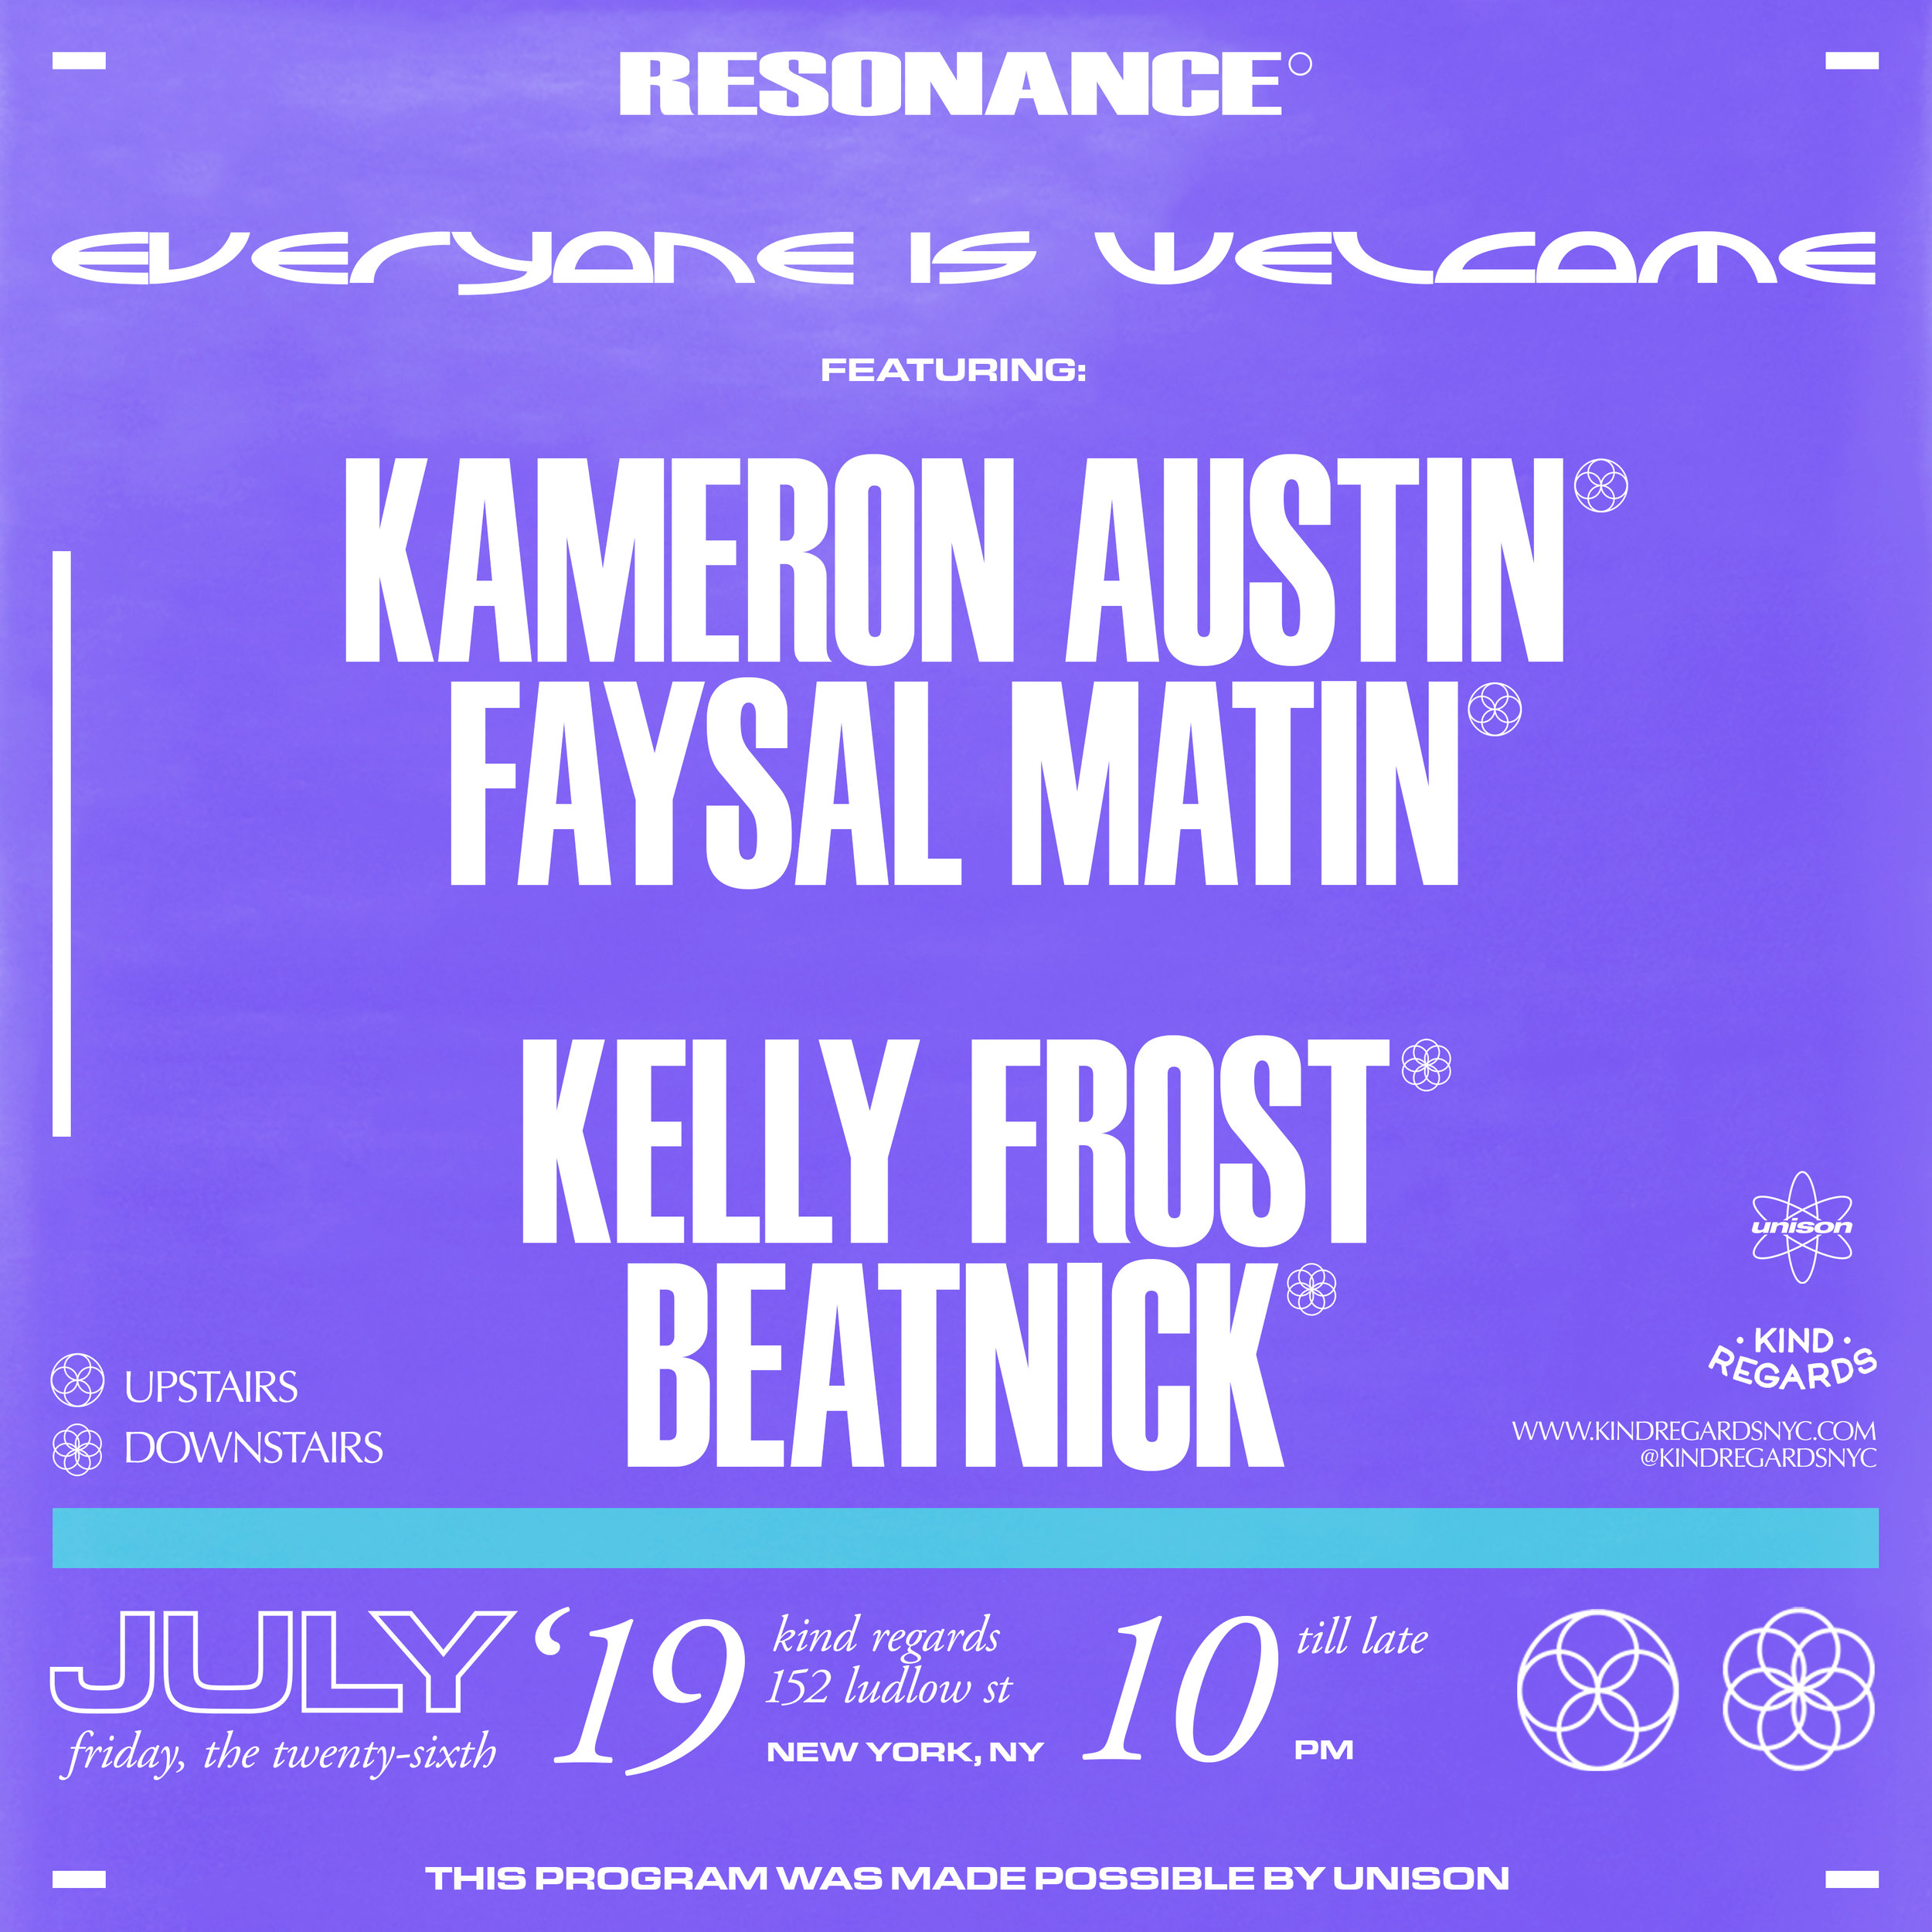 new resonance poster july 2019 26.jpg